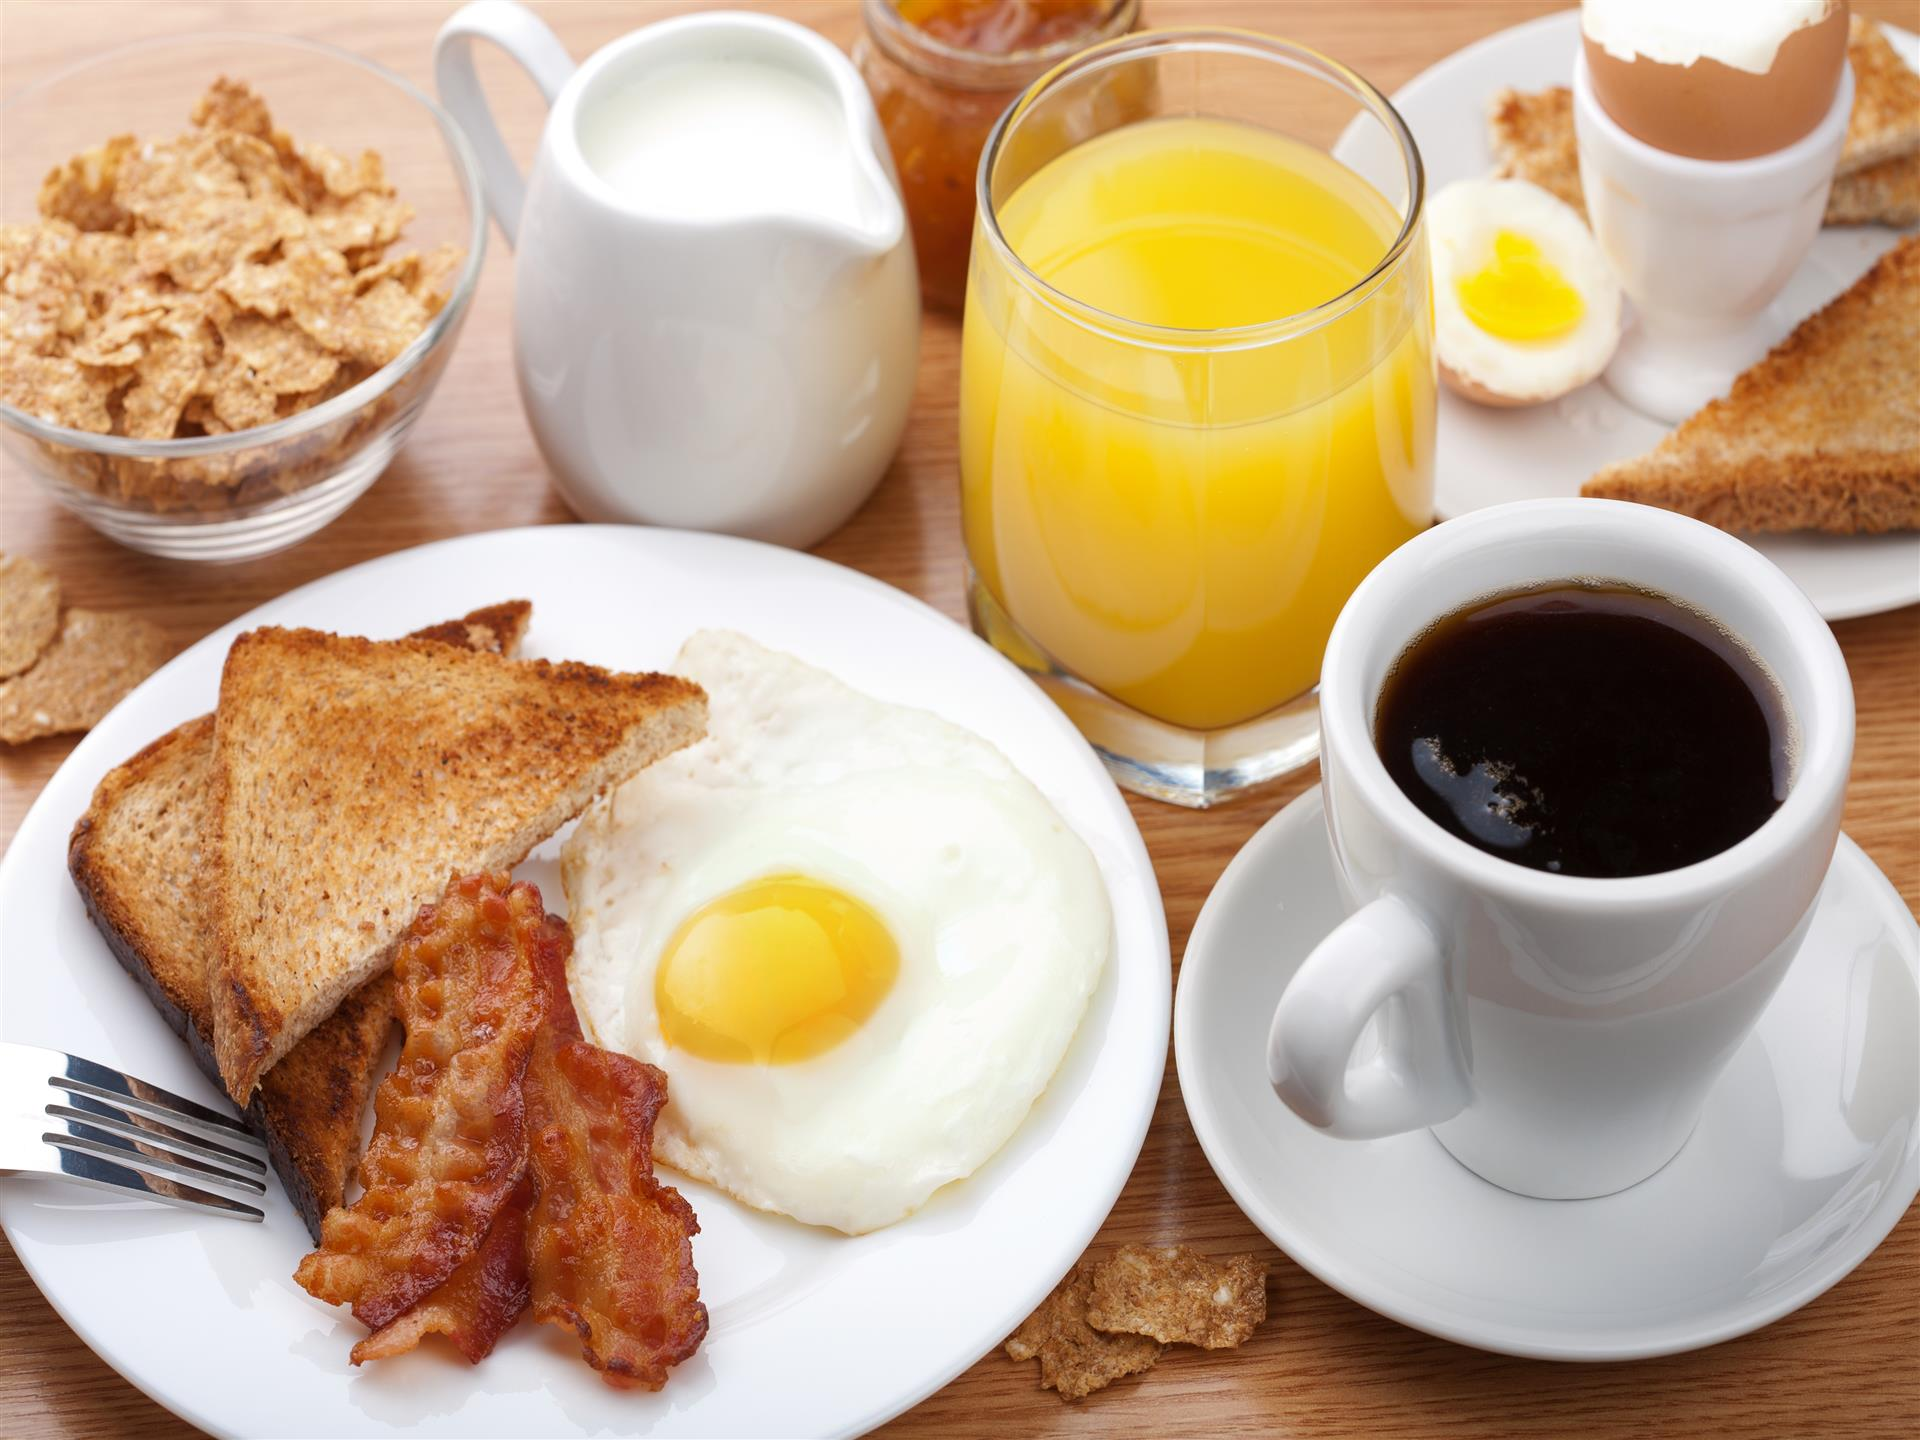 French Toast, Eggs with a Cup of Coffee